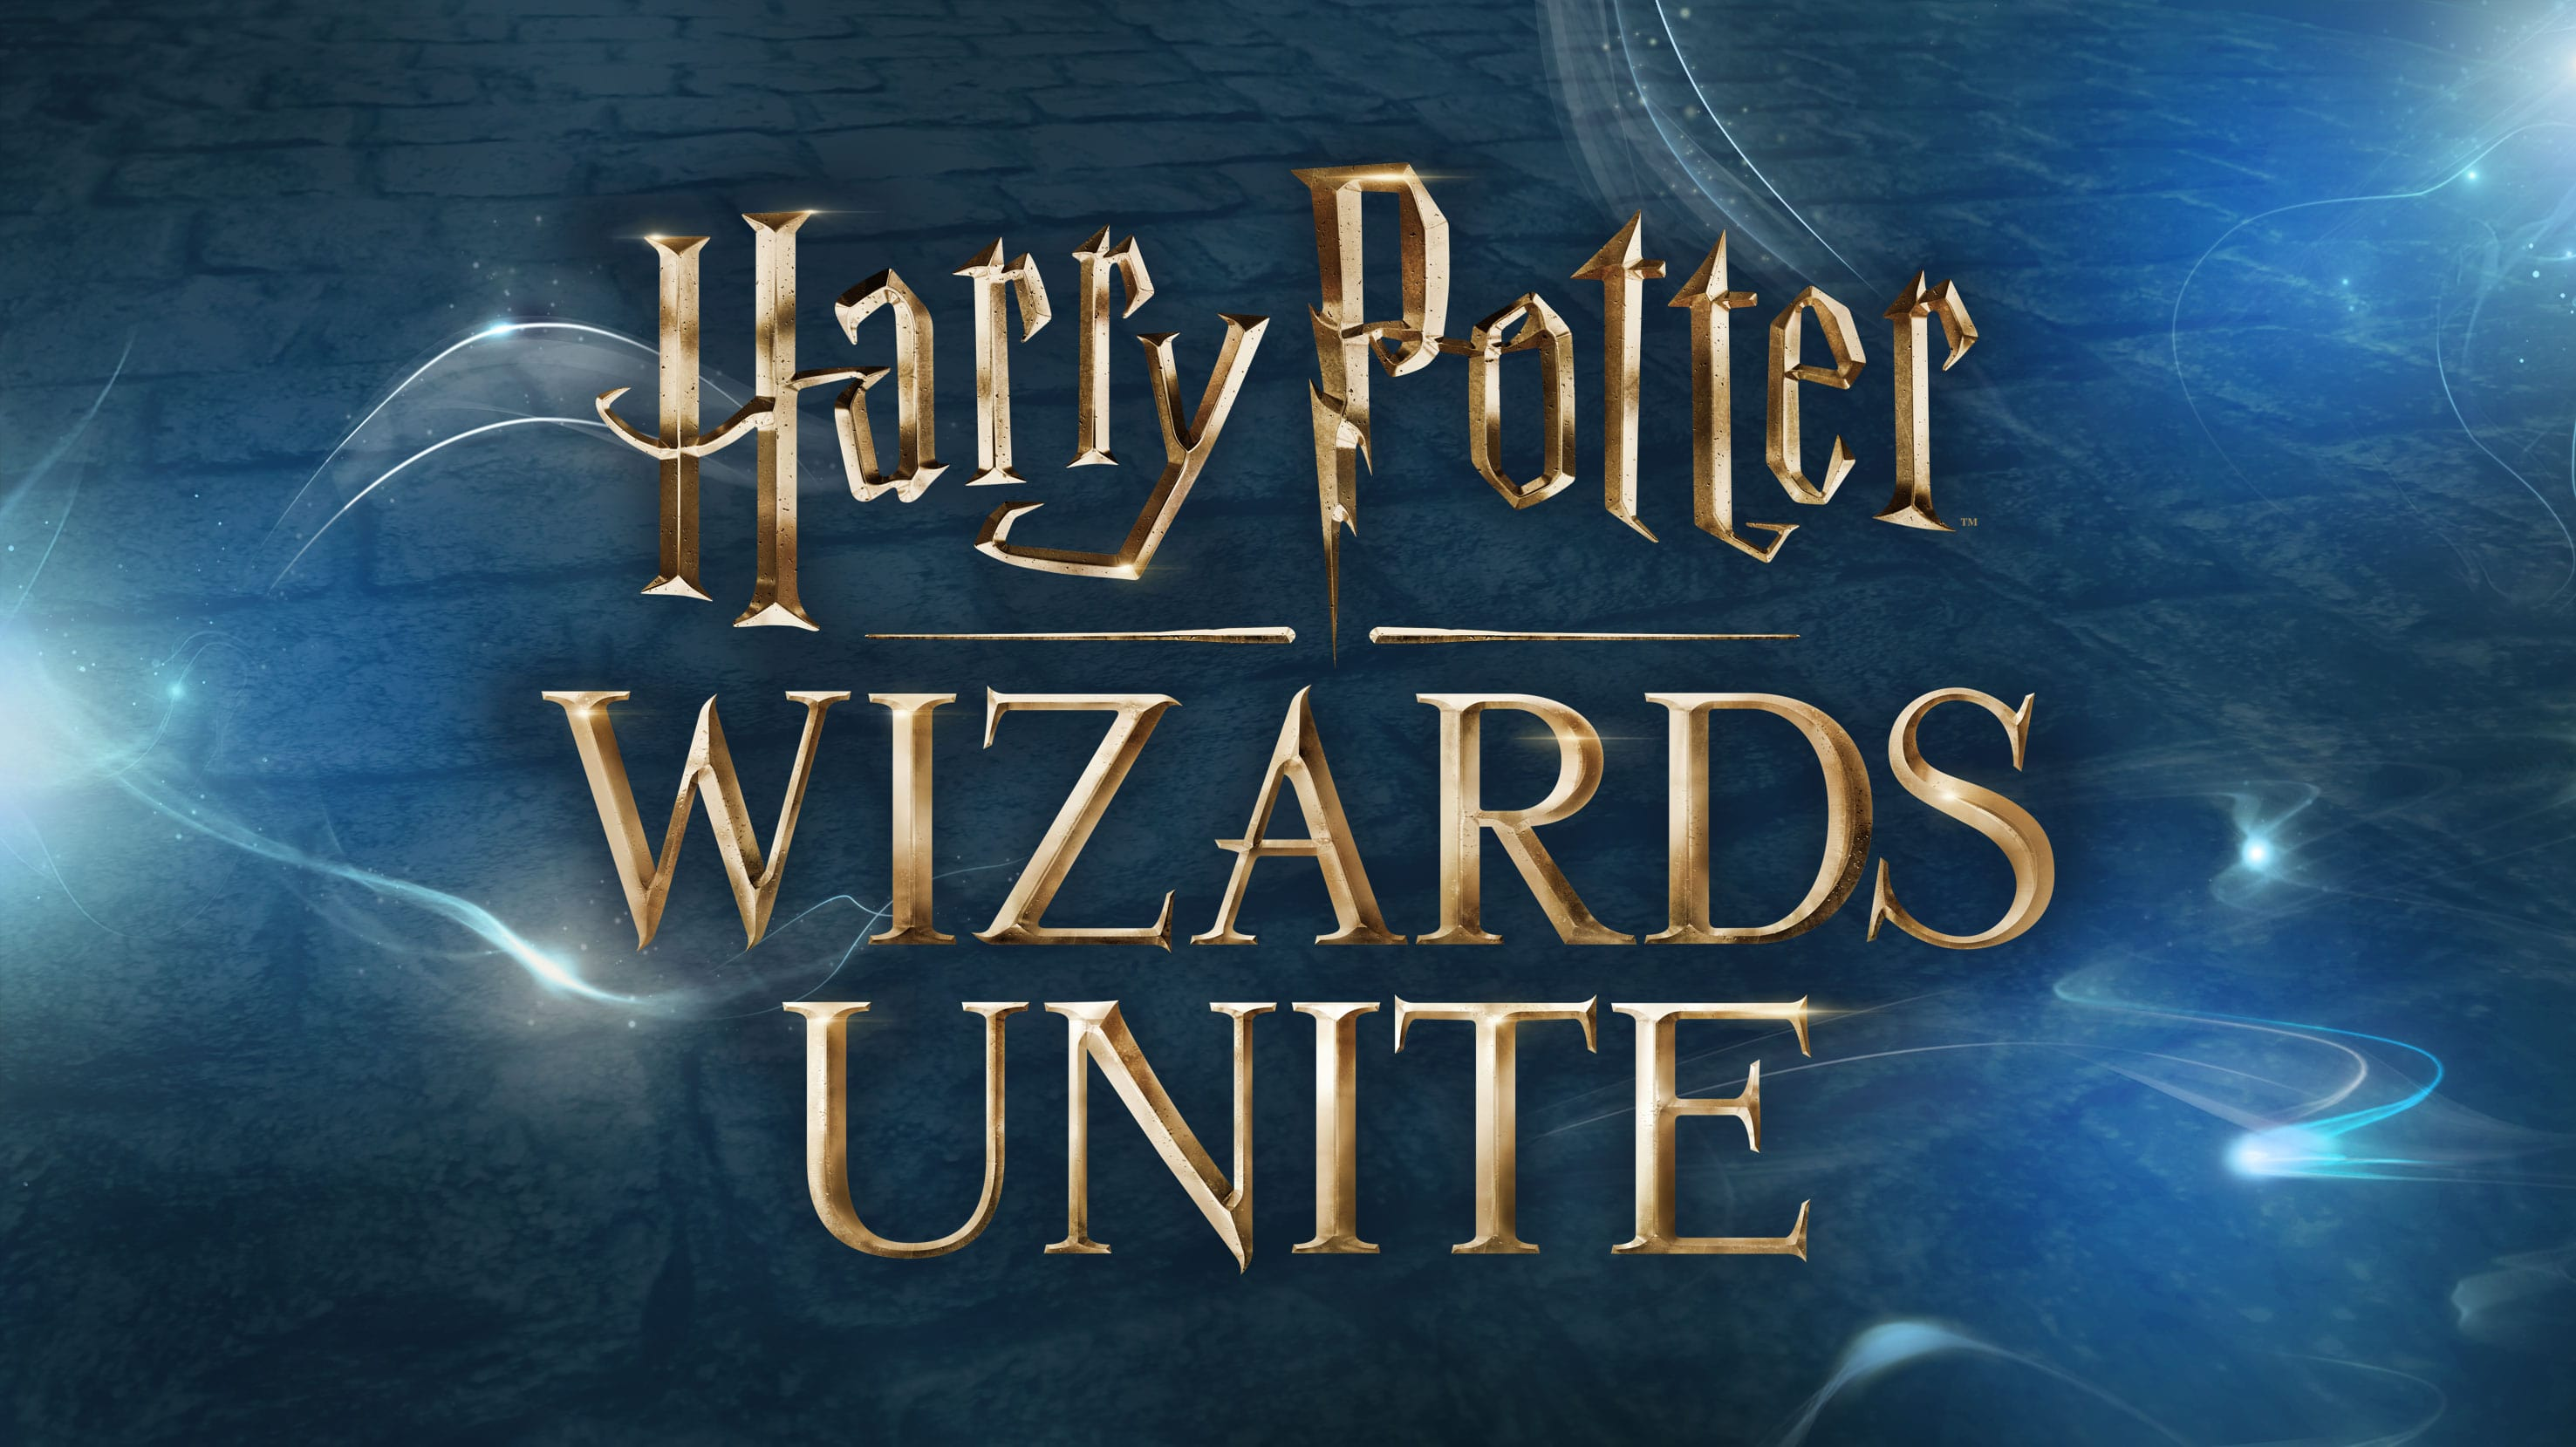 Harry Potter Wizards Unite Hd Wallpapers 7wallpapers Net